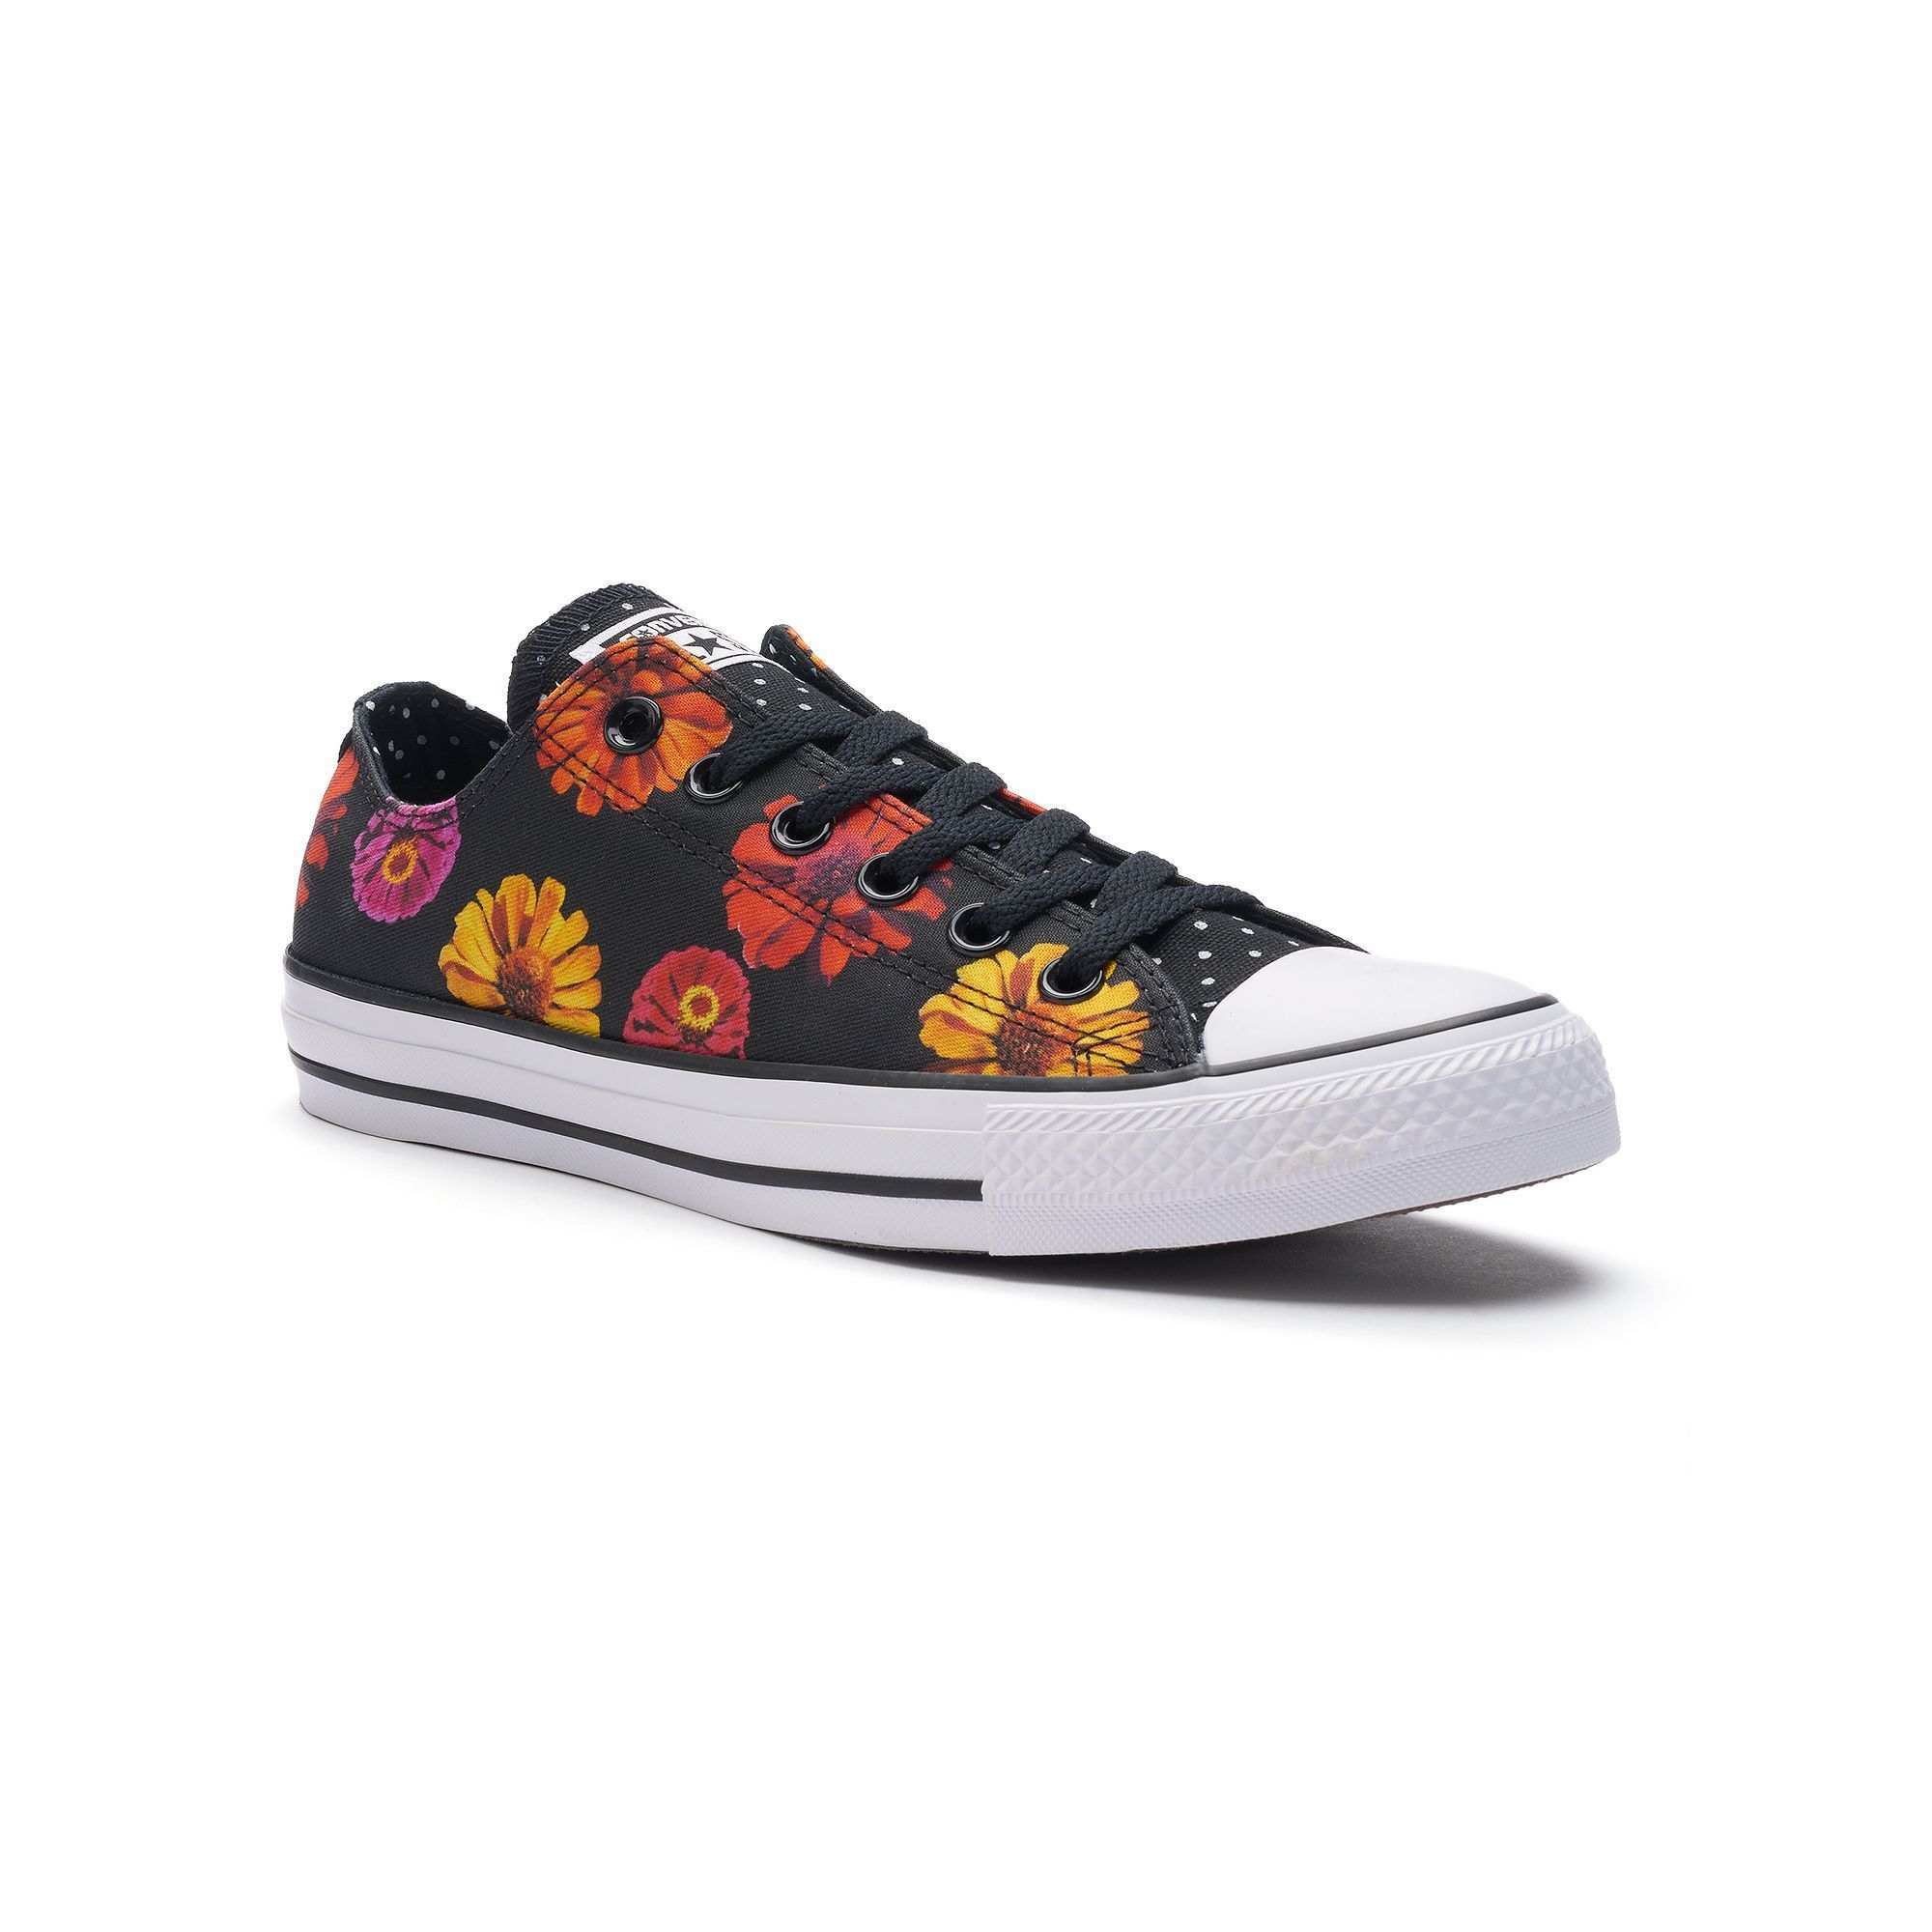 03f309226fac Adult Converse Chuck Taylor All Star Daisy Print Sneakers